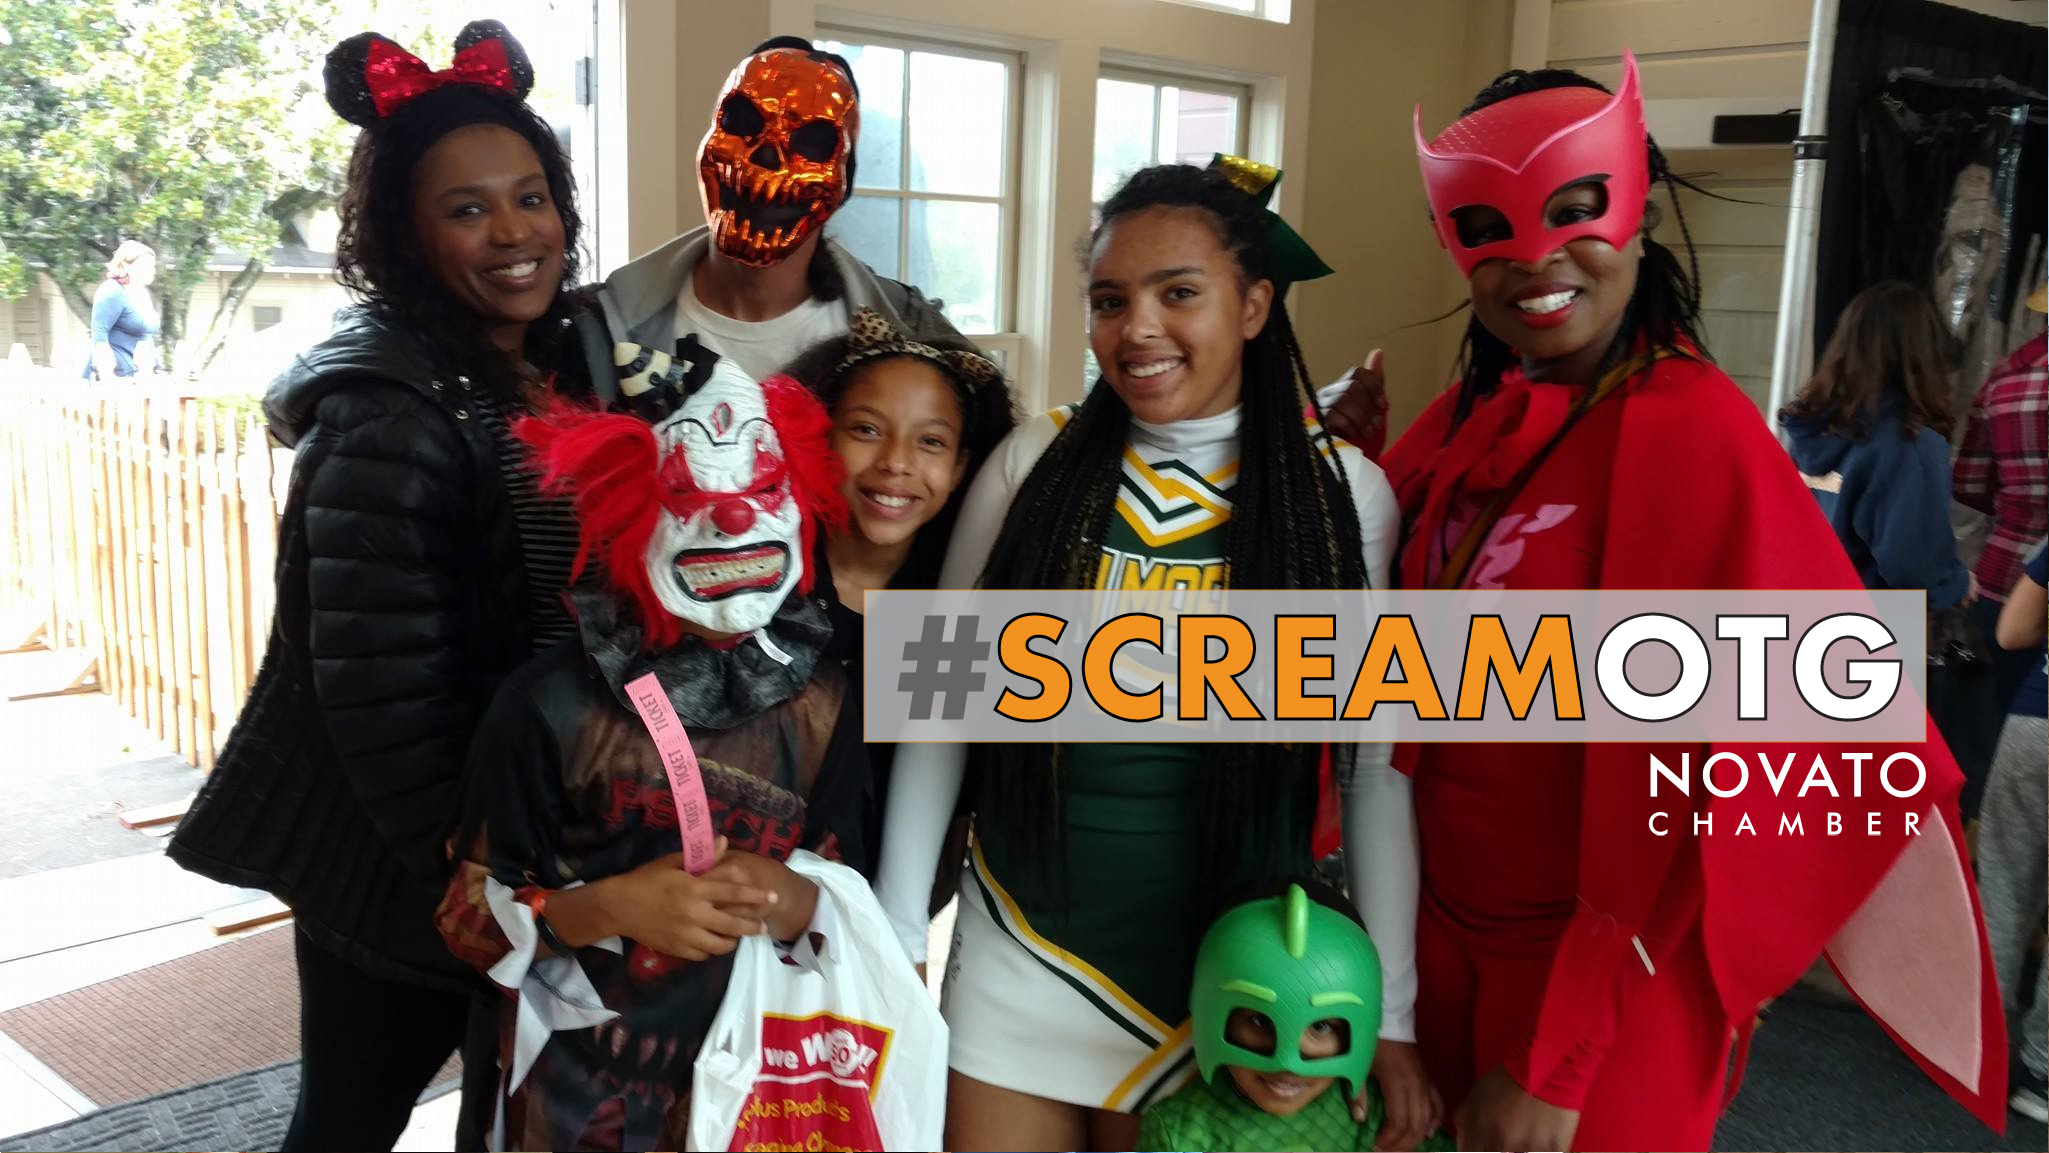 Novato Chamber Scream on the Green Halloween haunted house costume teens preteen novato north bay petaluma novato San rafael marin sonoma DNBA downtown City of Novato African American black richmond east bay